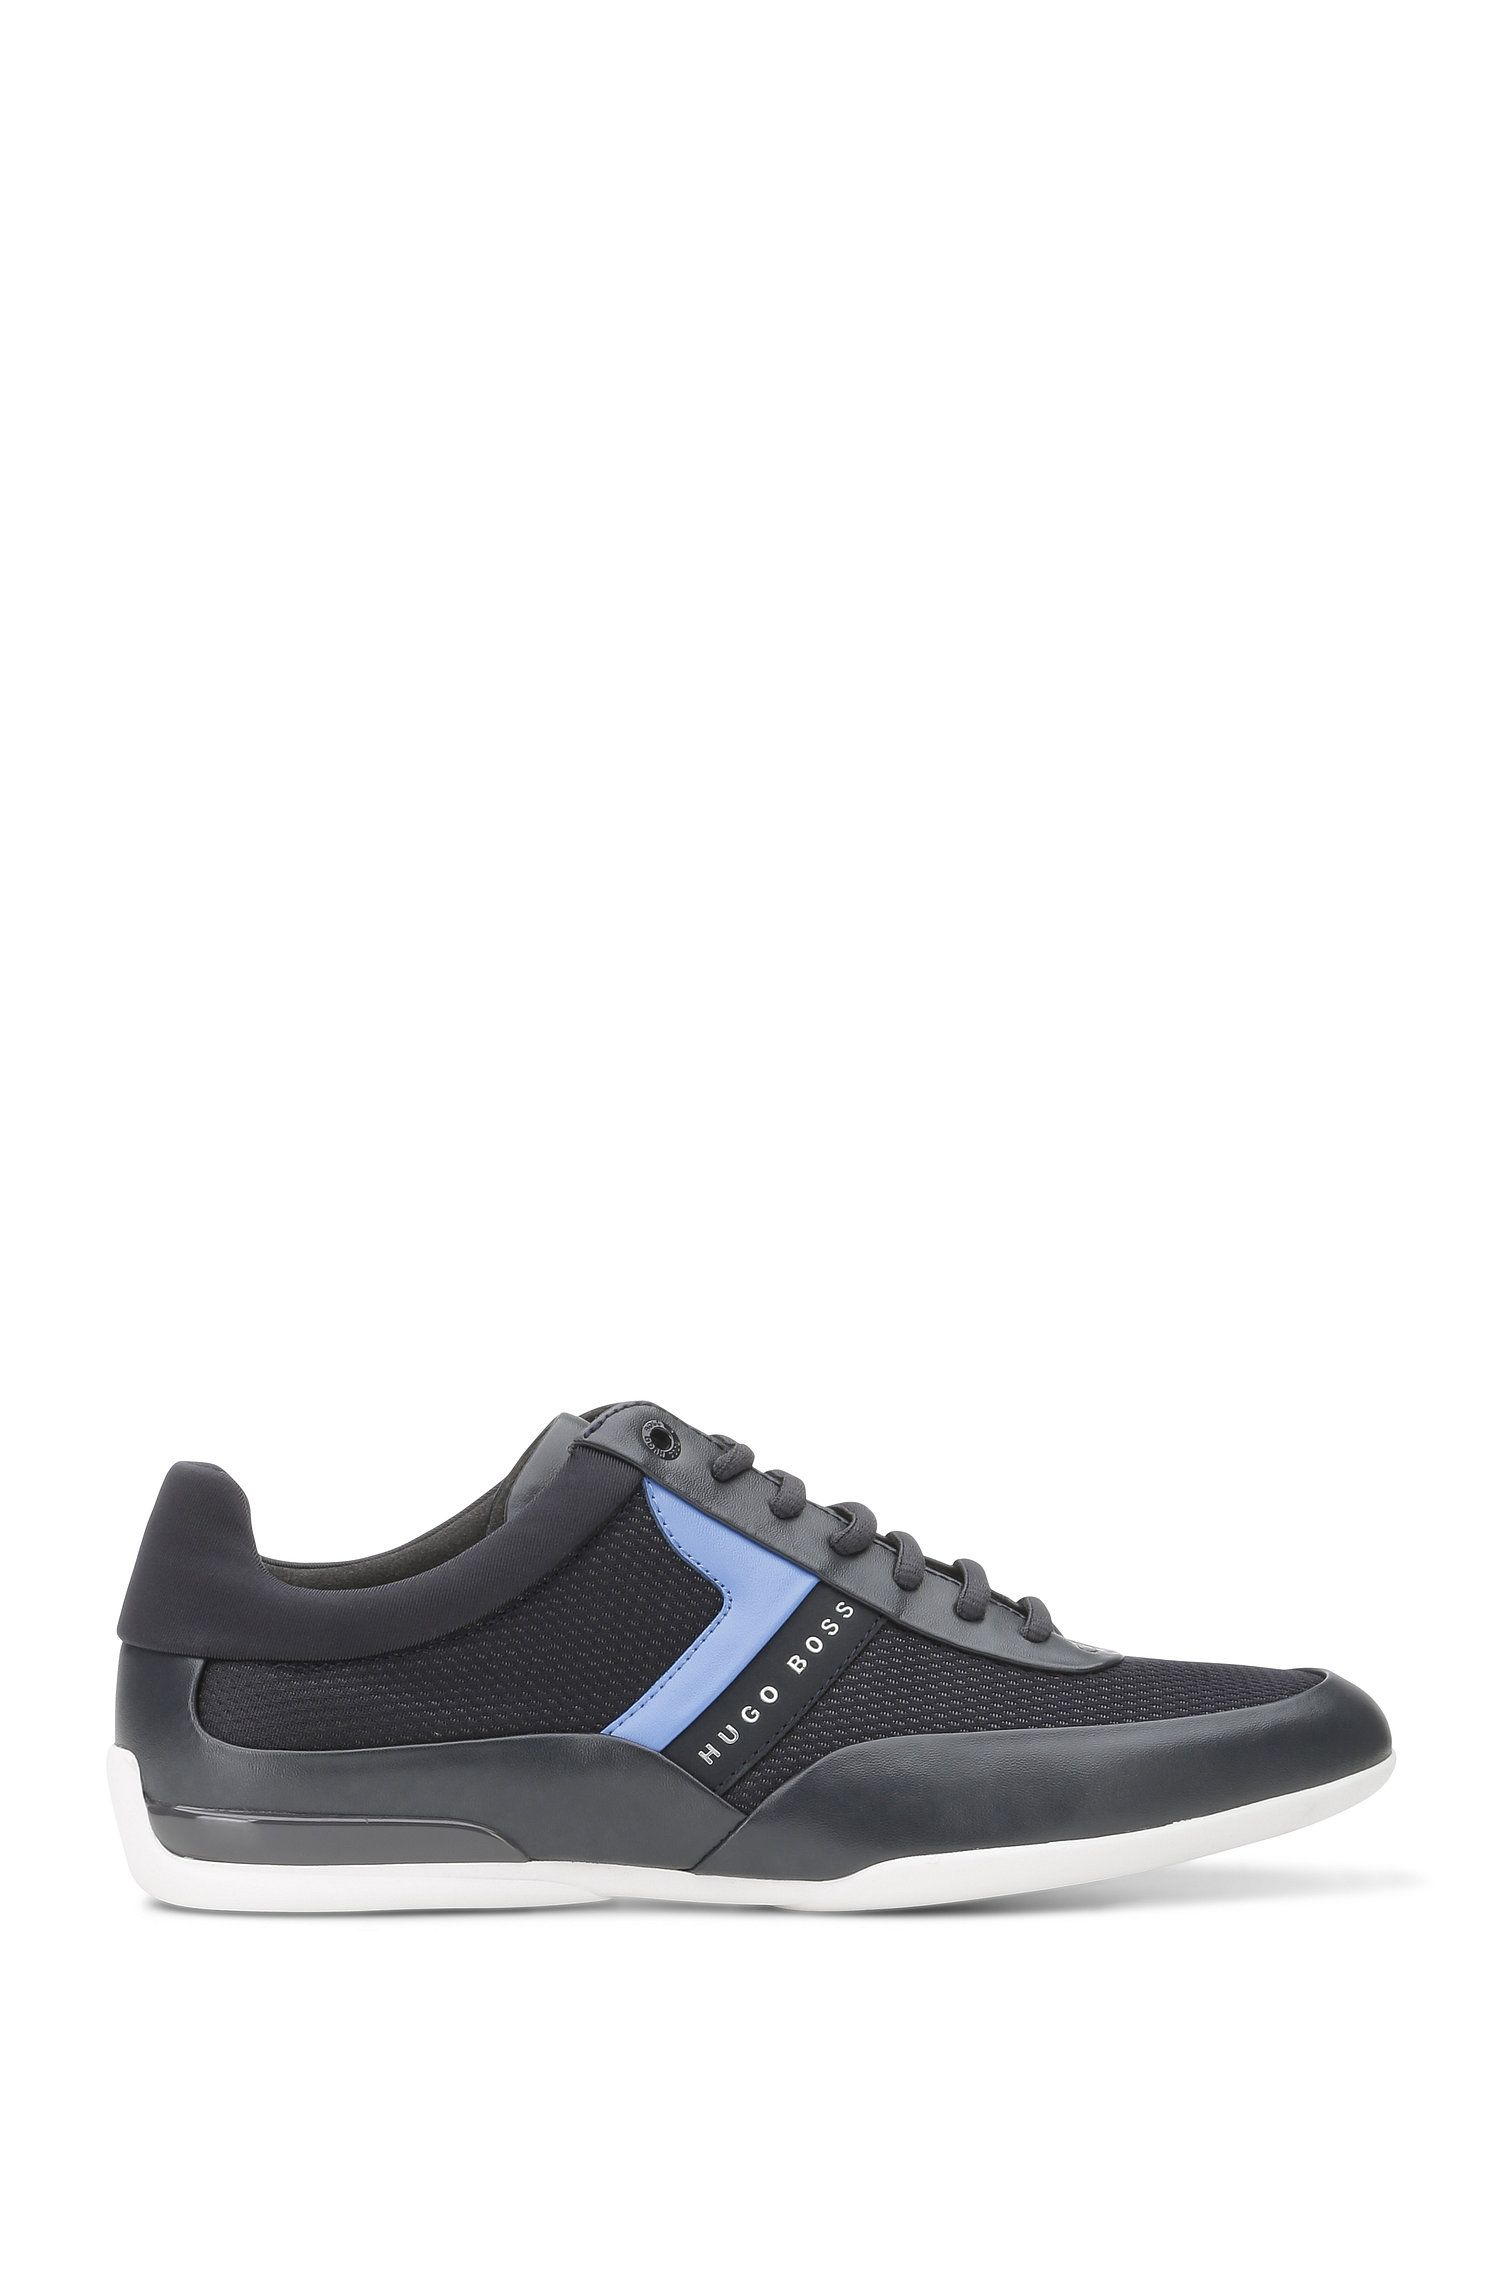 'Space Lowp Nyme' | Mesh Leather Sneakers